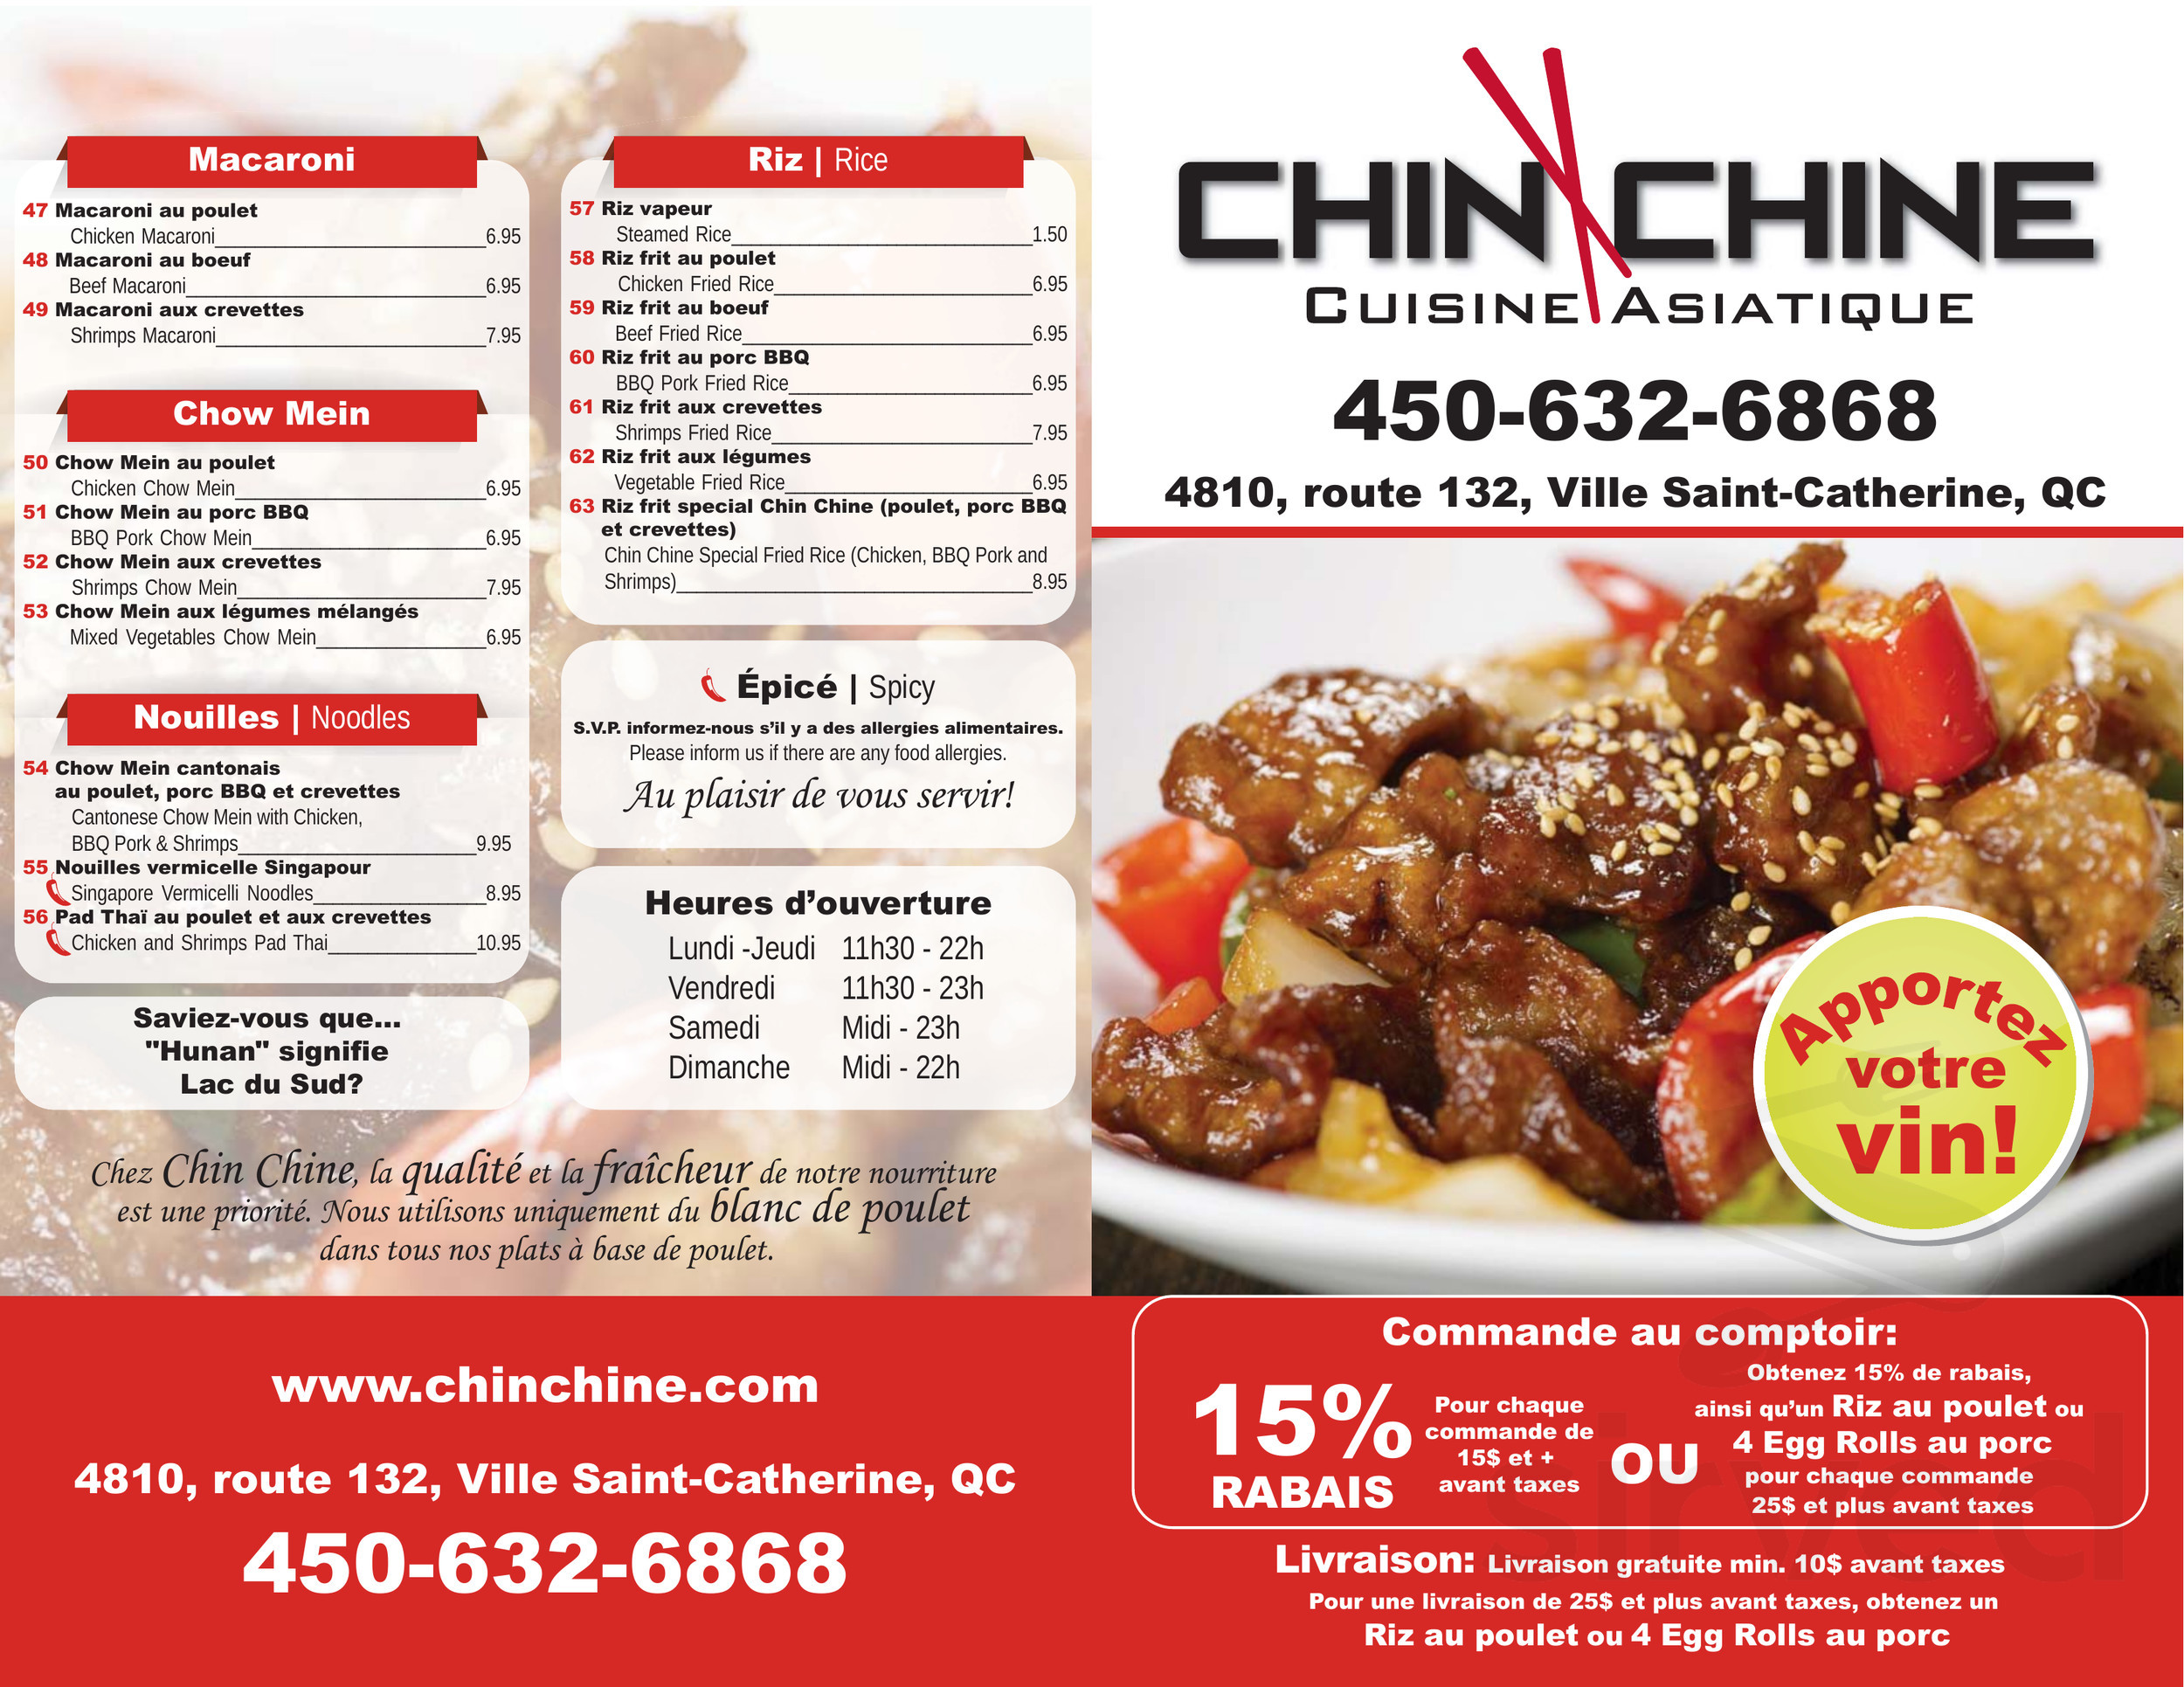 Cuisine Asiatique Menu For Chin Chine Cuisine Asiatique In Sainte Catherine Quebec